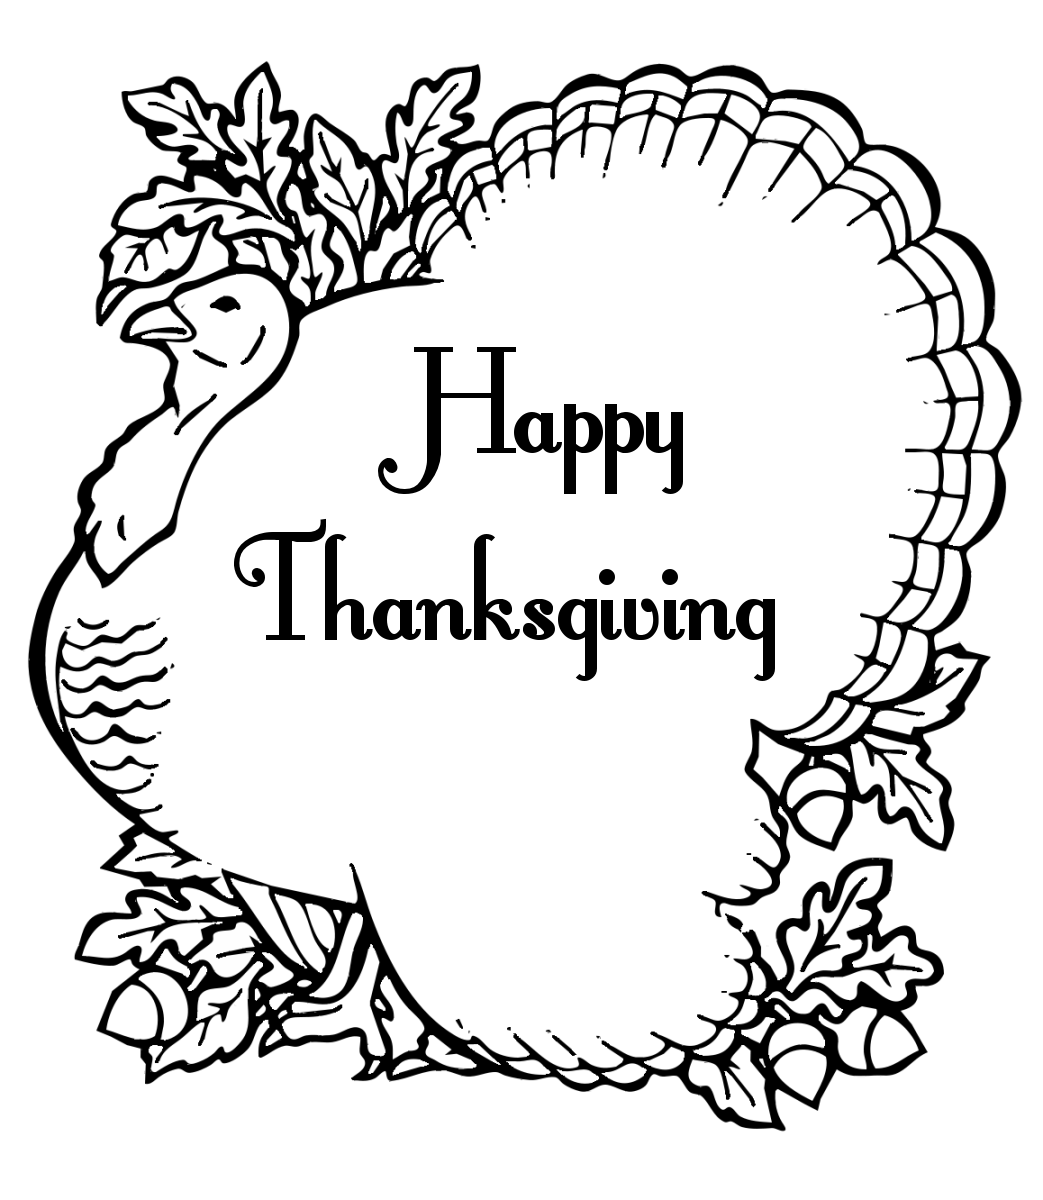 Thanksgiving Coloring Pages 2 Coloring Pages To Print Thanksgiving Coloring Pages Free Printable